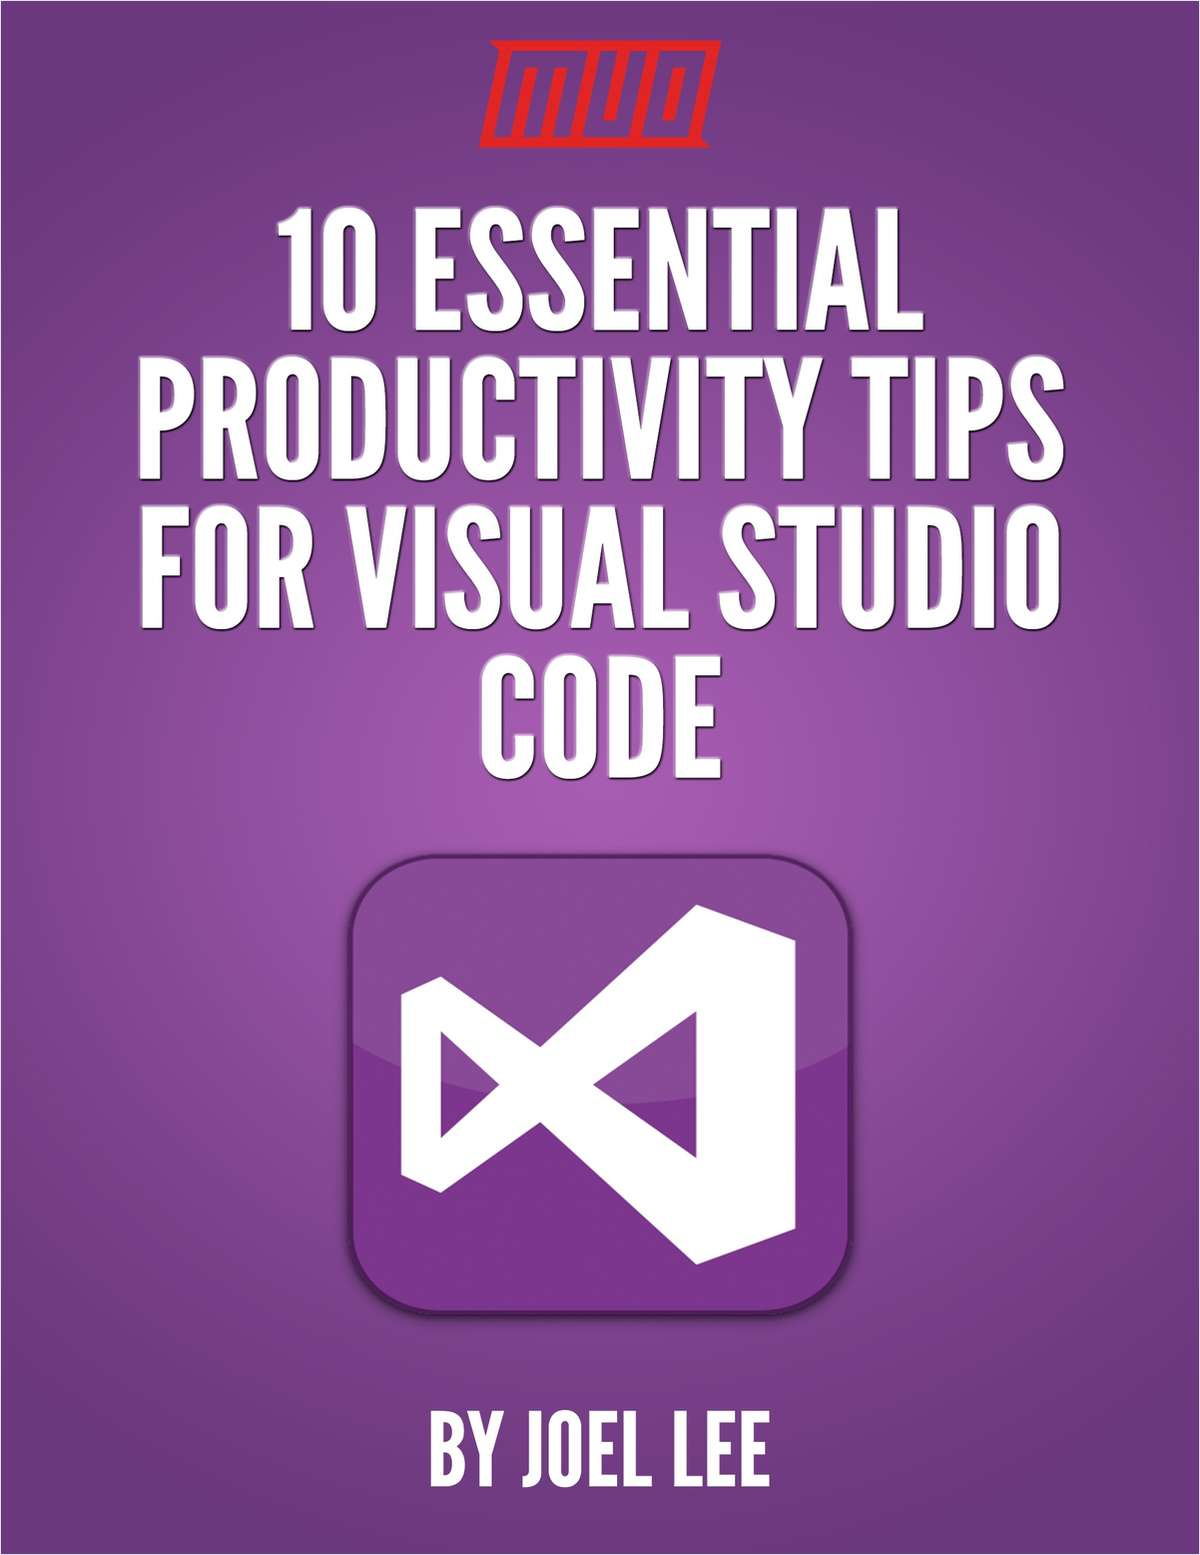 10 Essential Productivity Tips for Visual Studio Code